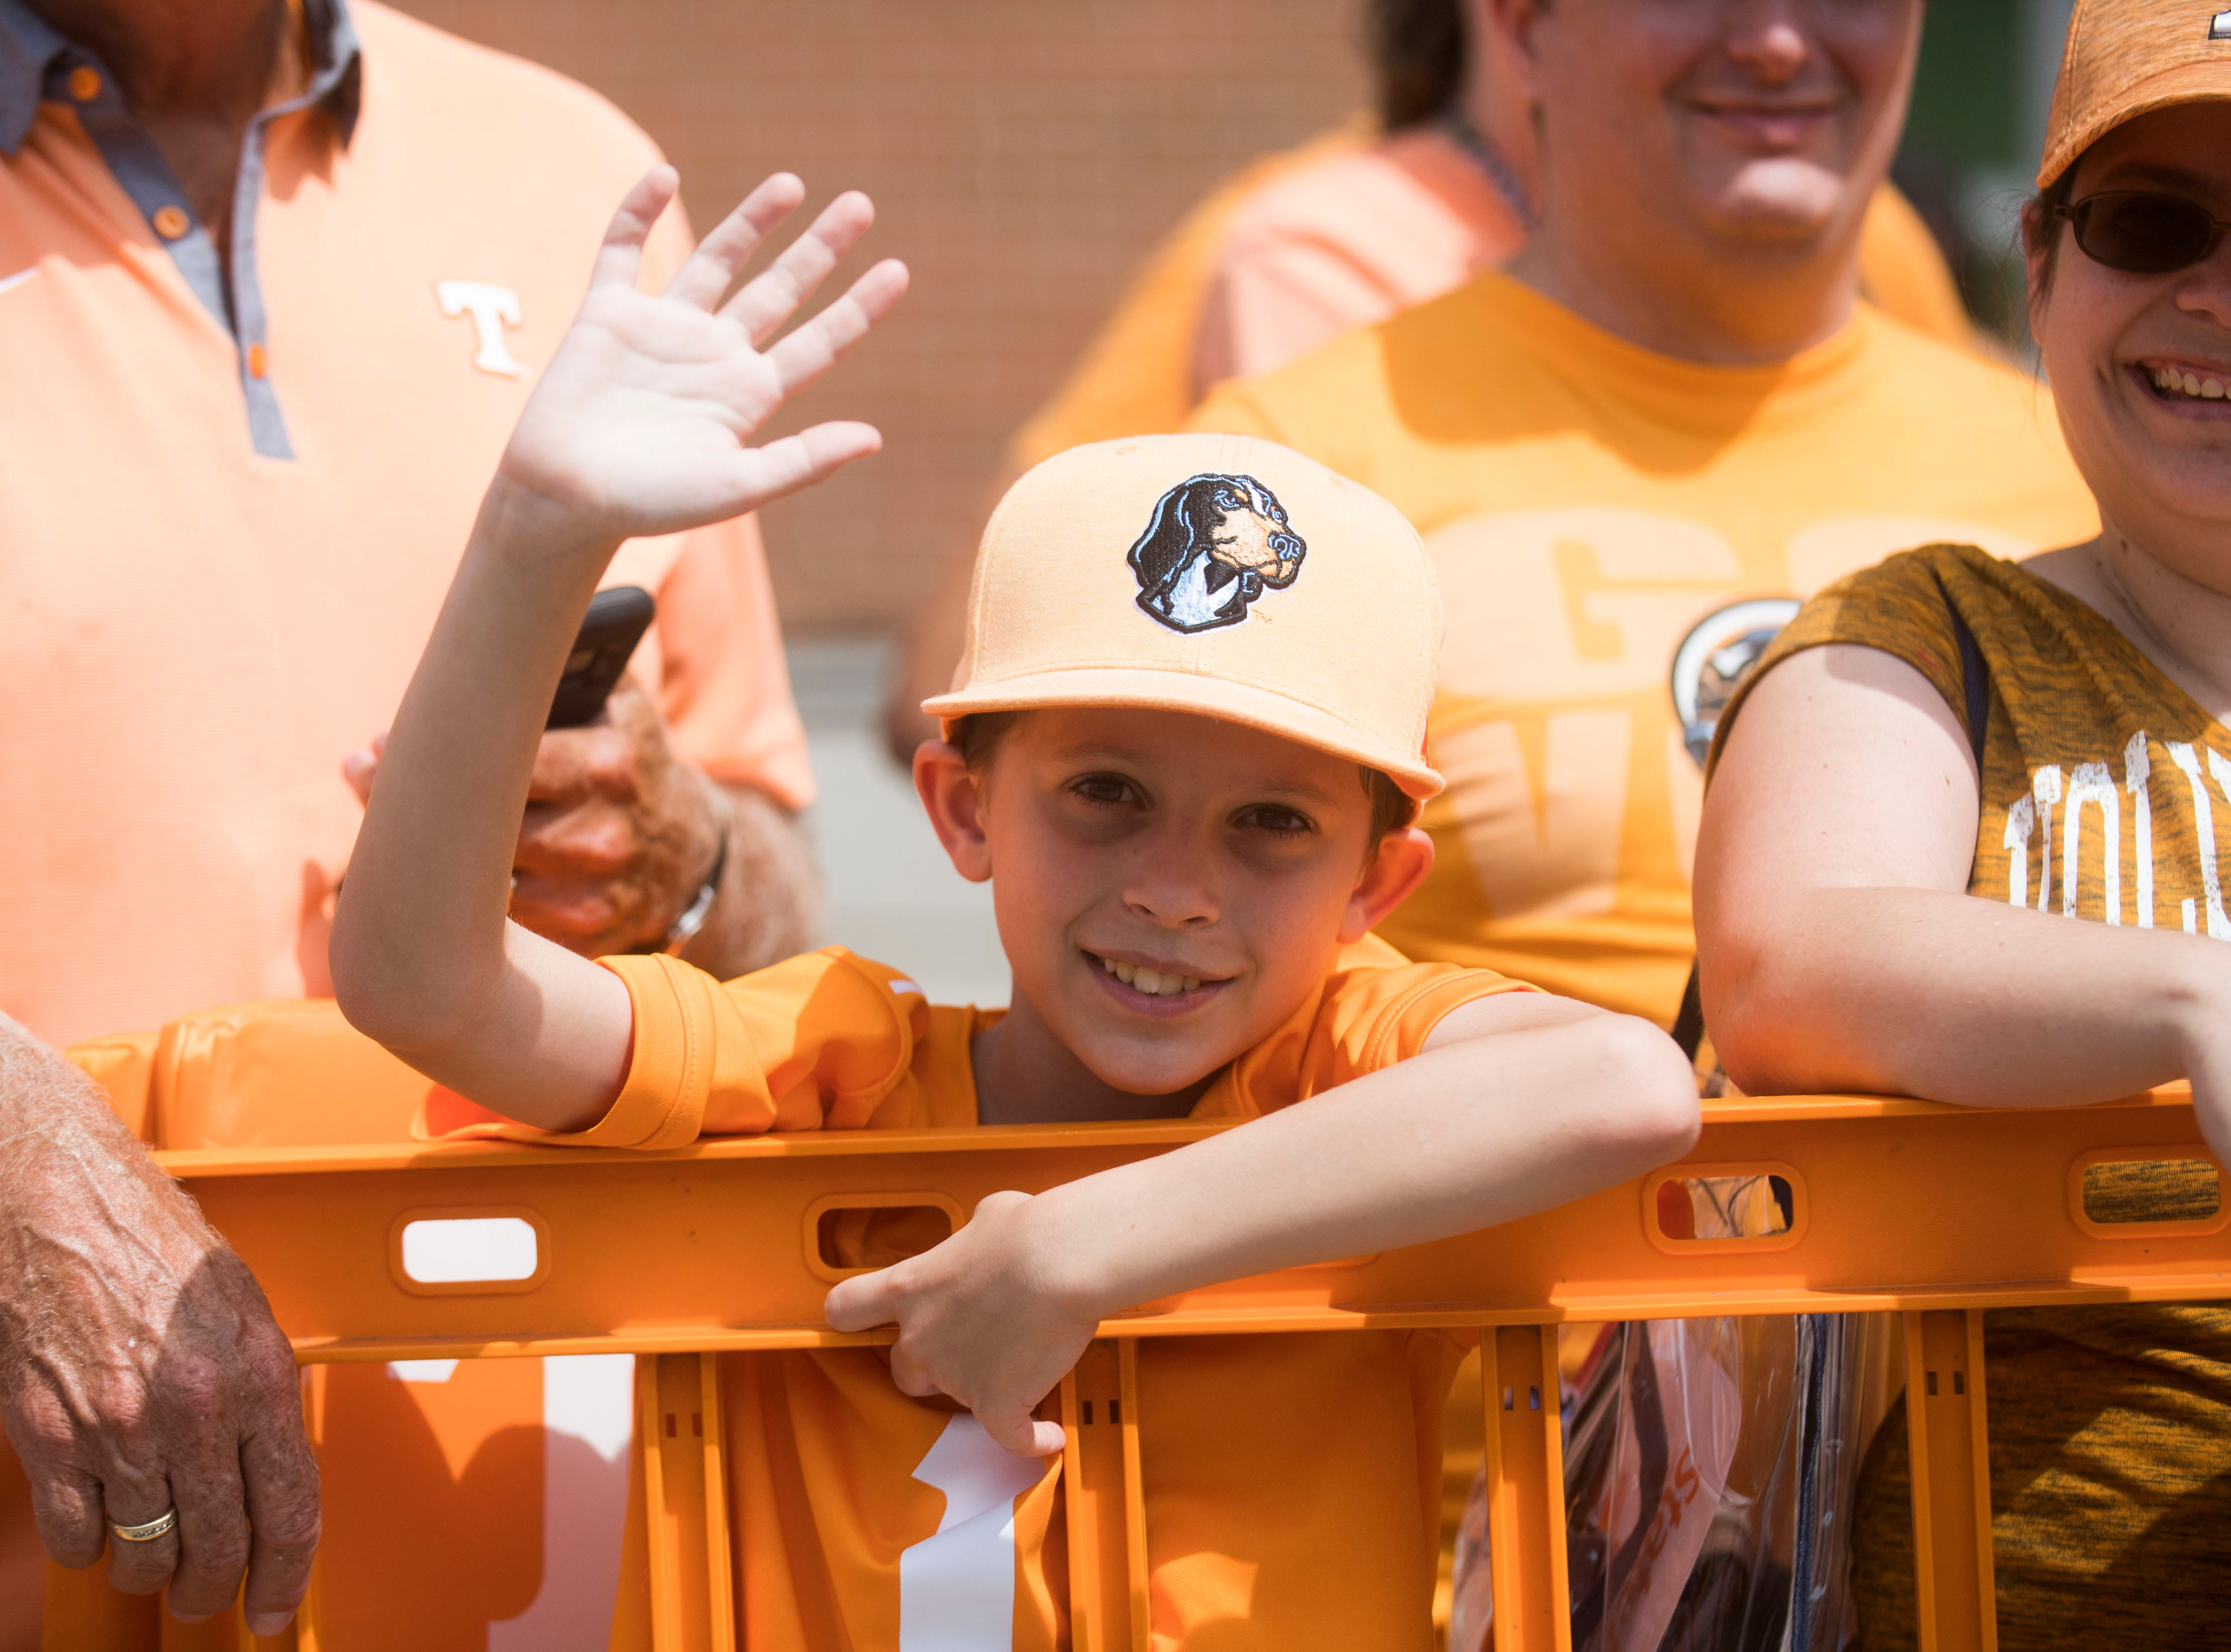 A young Vols fan poses for a photo before a Tennessee Vols football game against ETSU outside Neyland Stadium Saturday, Sept. 8, 2018.